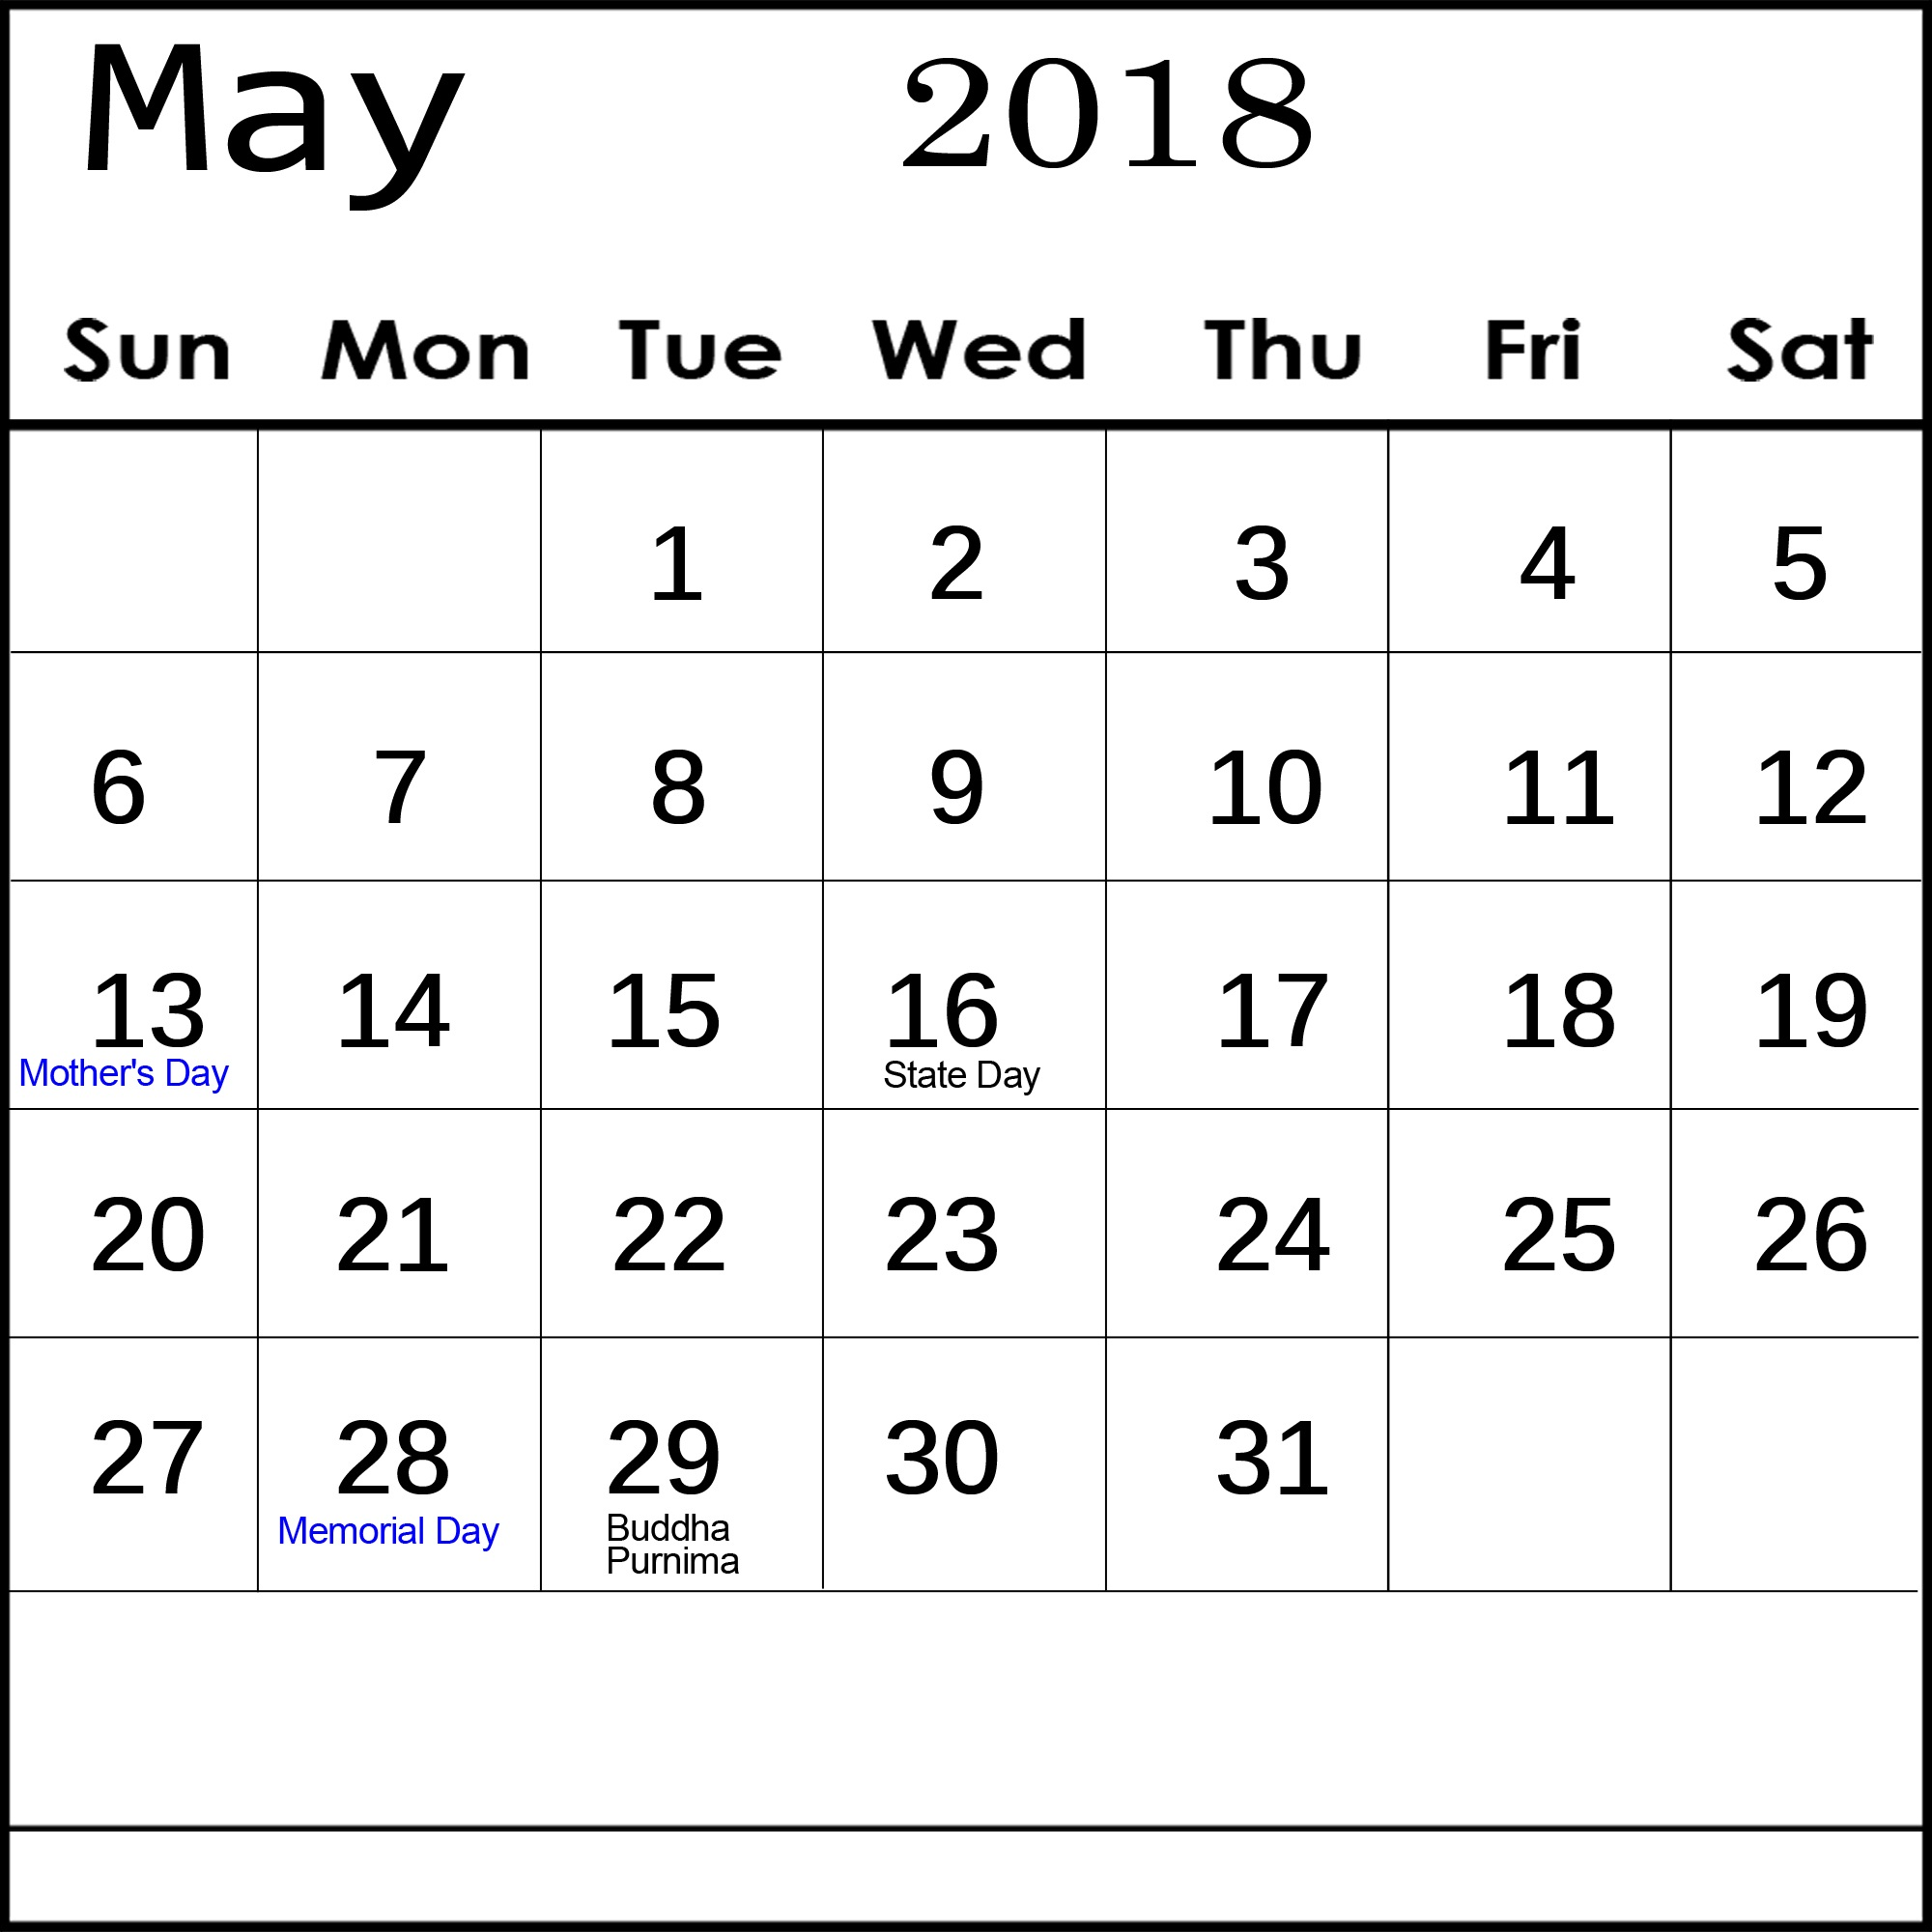 Fillable Calendar For May 2018